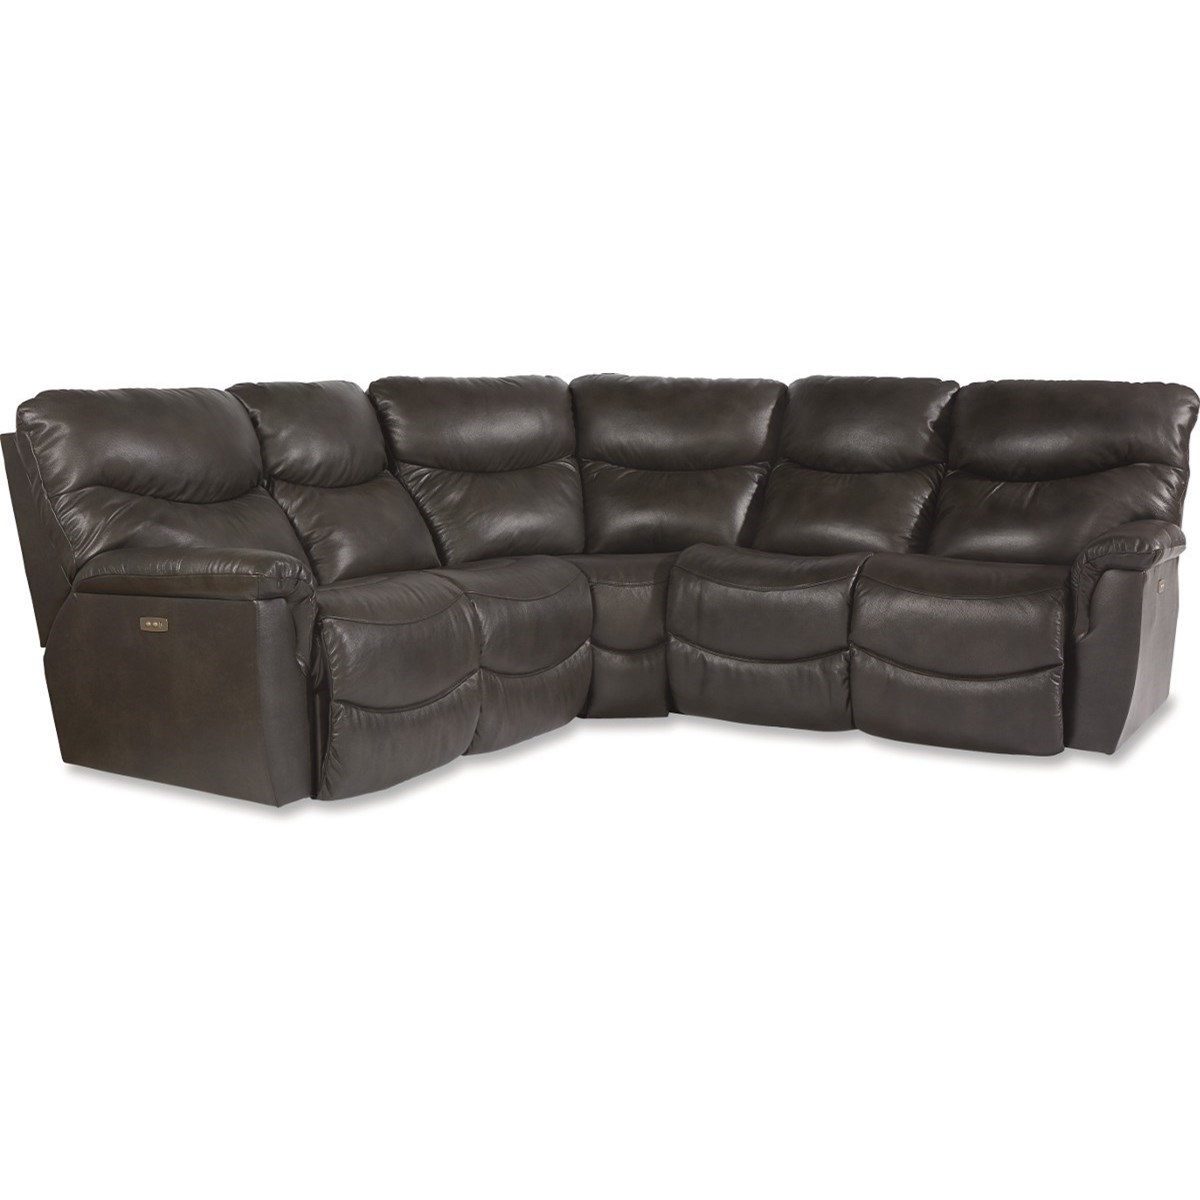 James 3 Pc Power Reclining Sectional Sofa by La-Z-Boy at Reid's Furniture